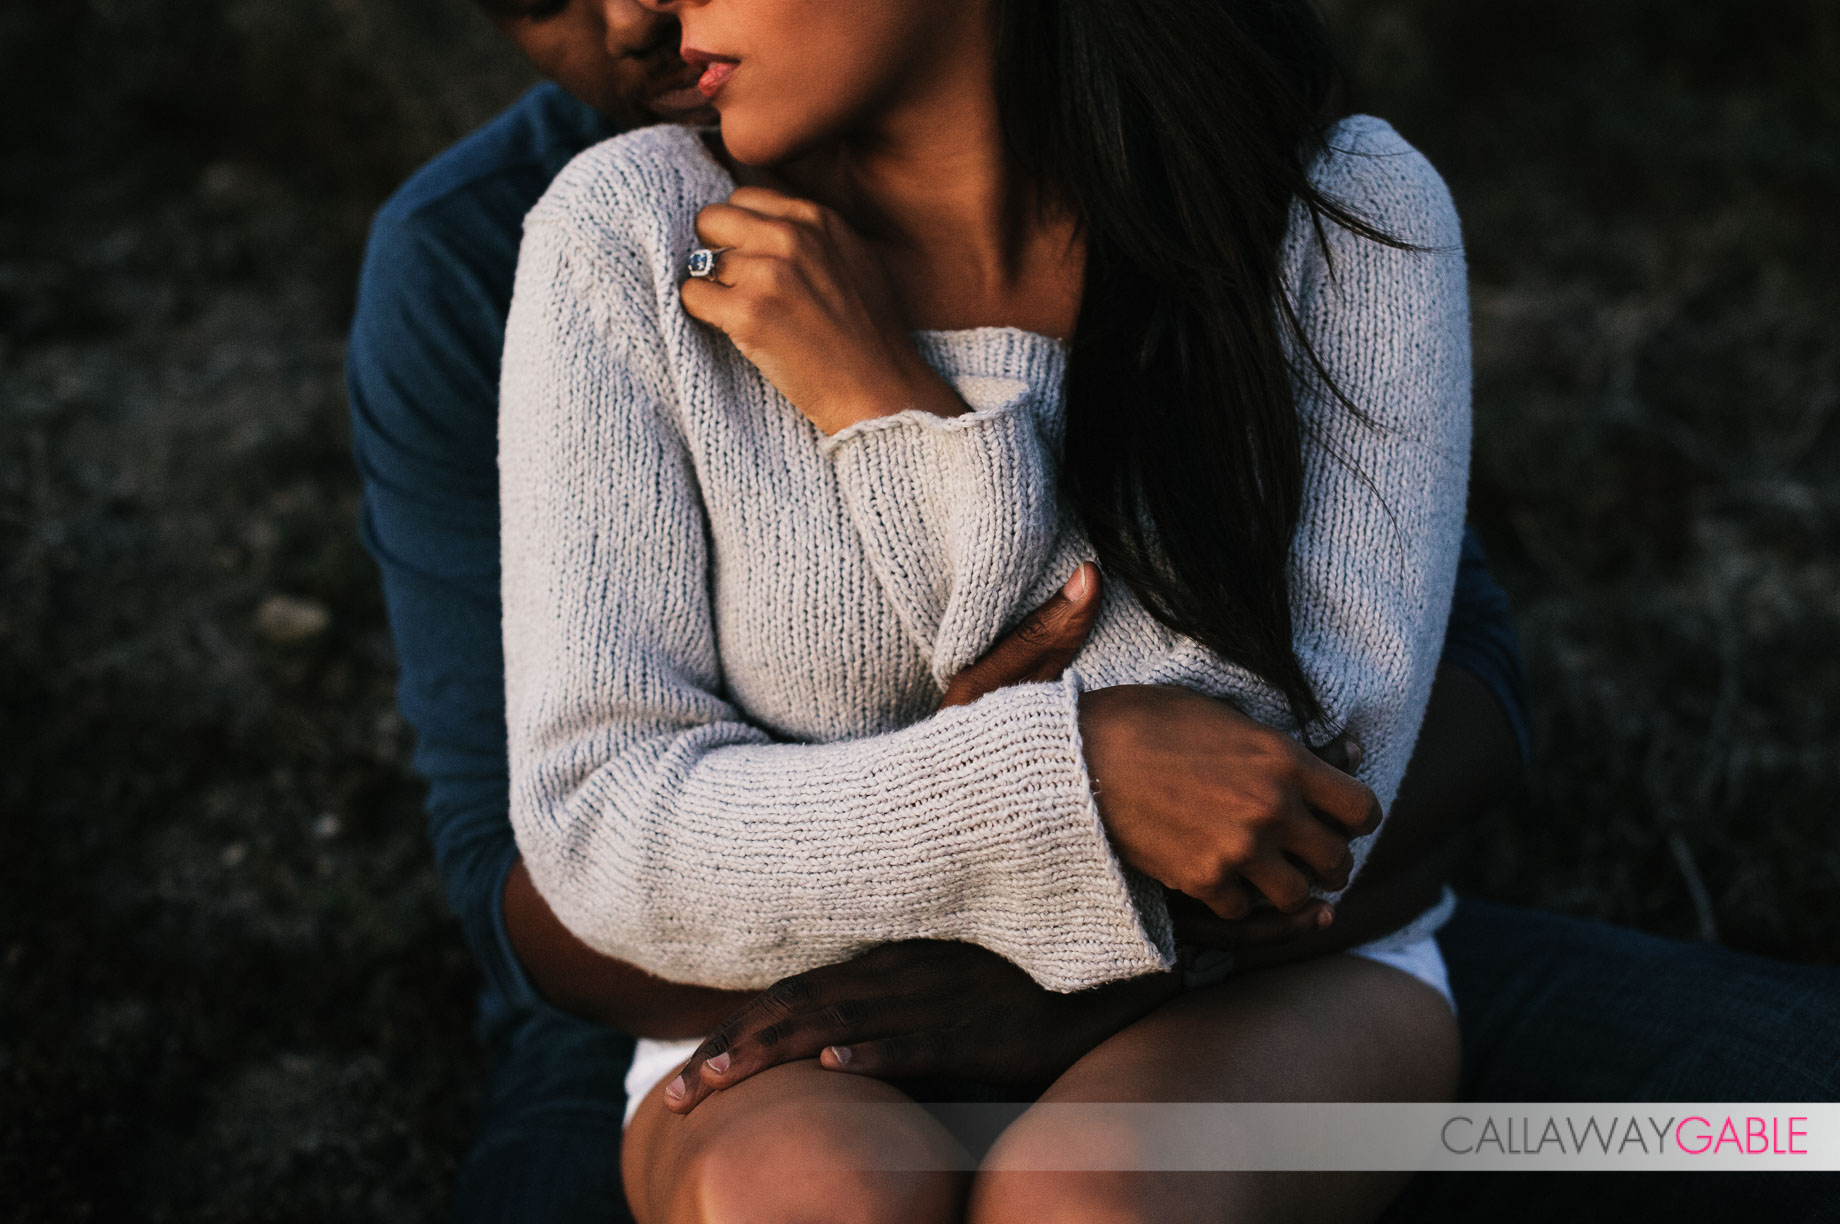 Romantic sunset engagement photo at Poitn Fermin Park in San Pedro